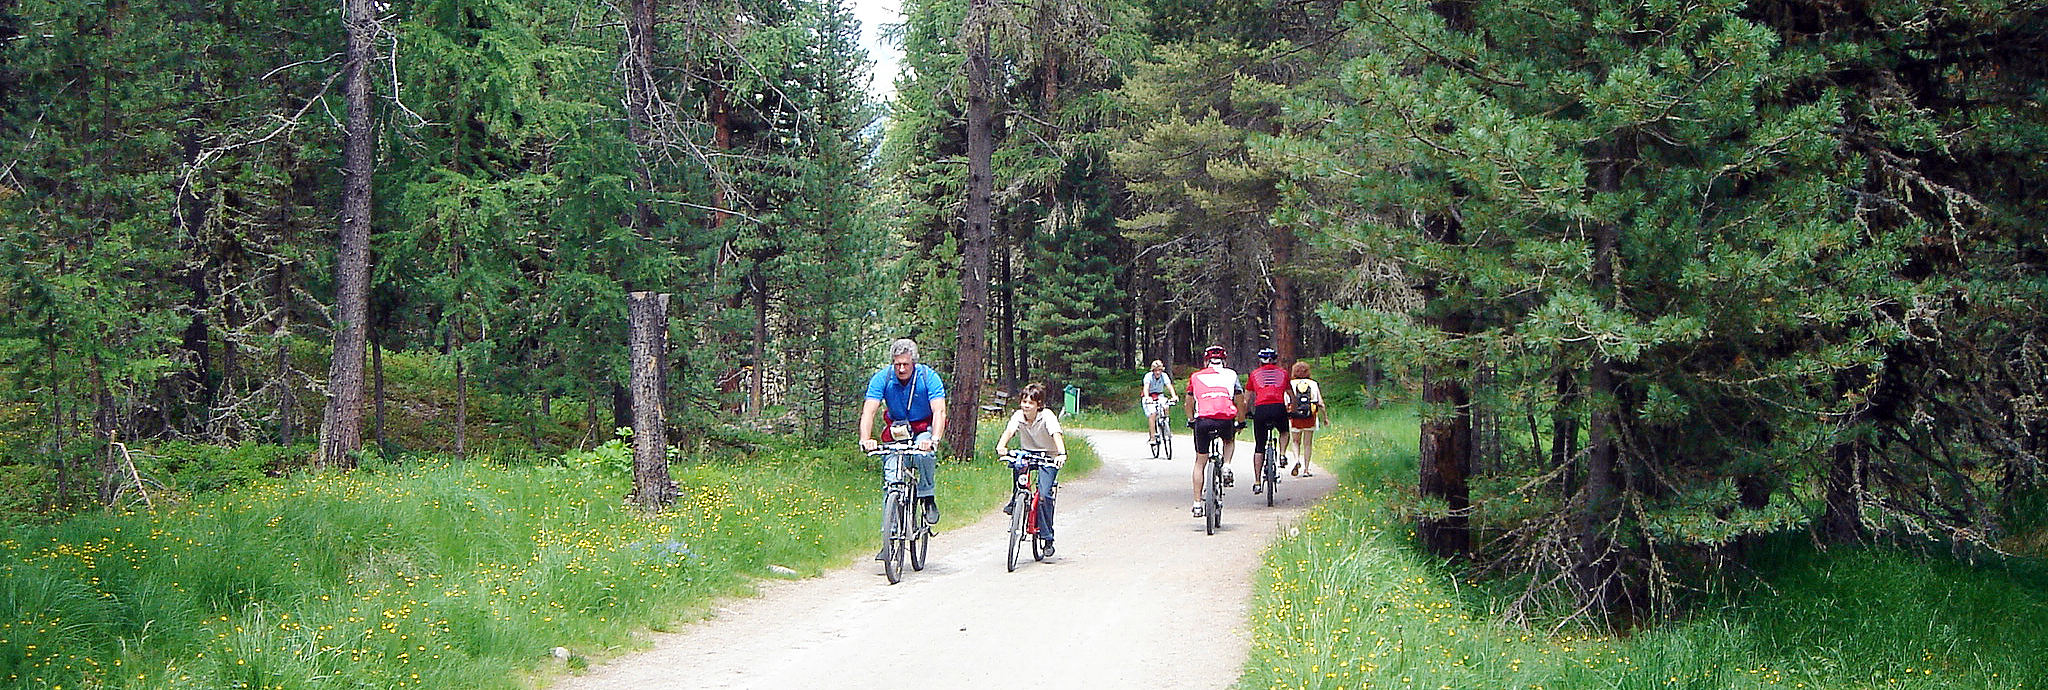 Landscapes For Health And Recreation Wsl